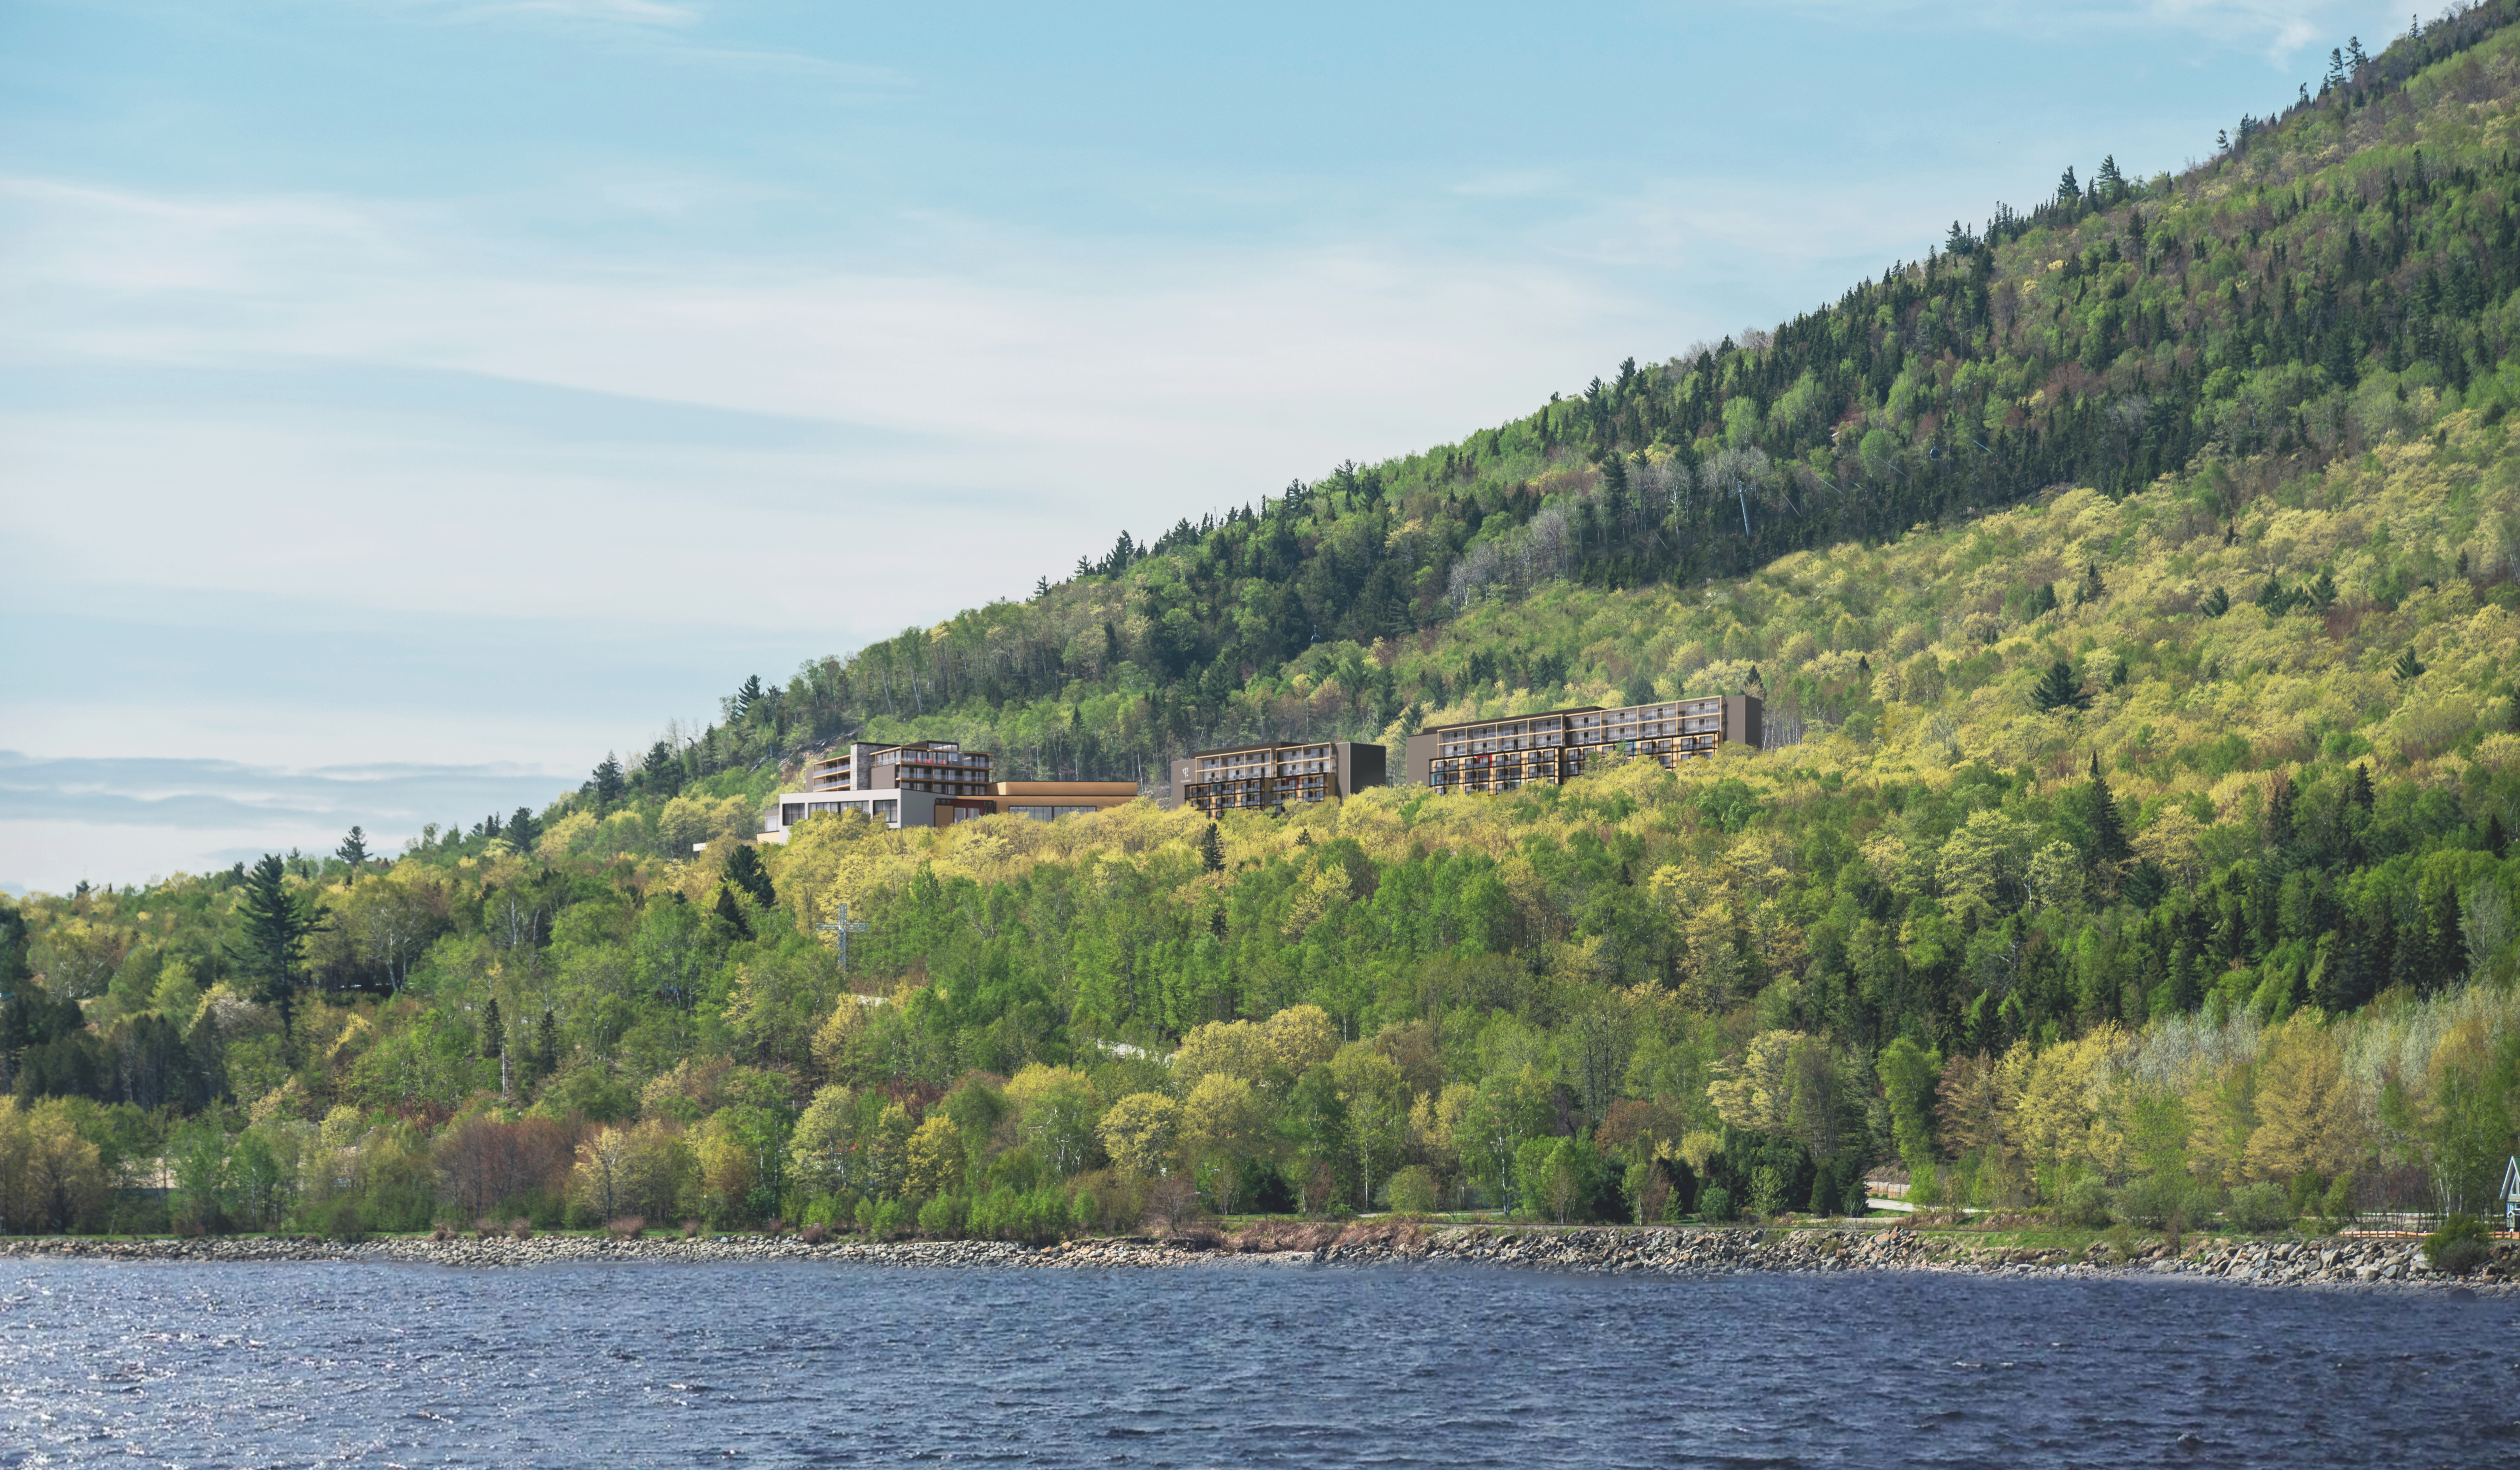 The Québec Charlevoix resort will be the brand's first ski property to remain open year-round.